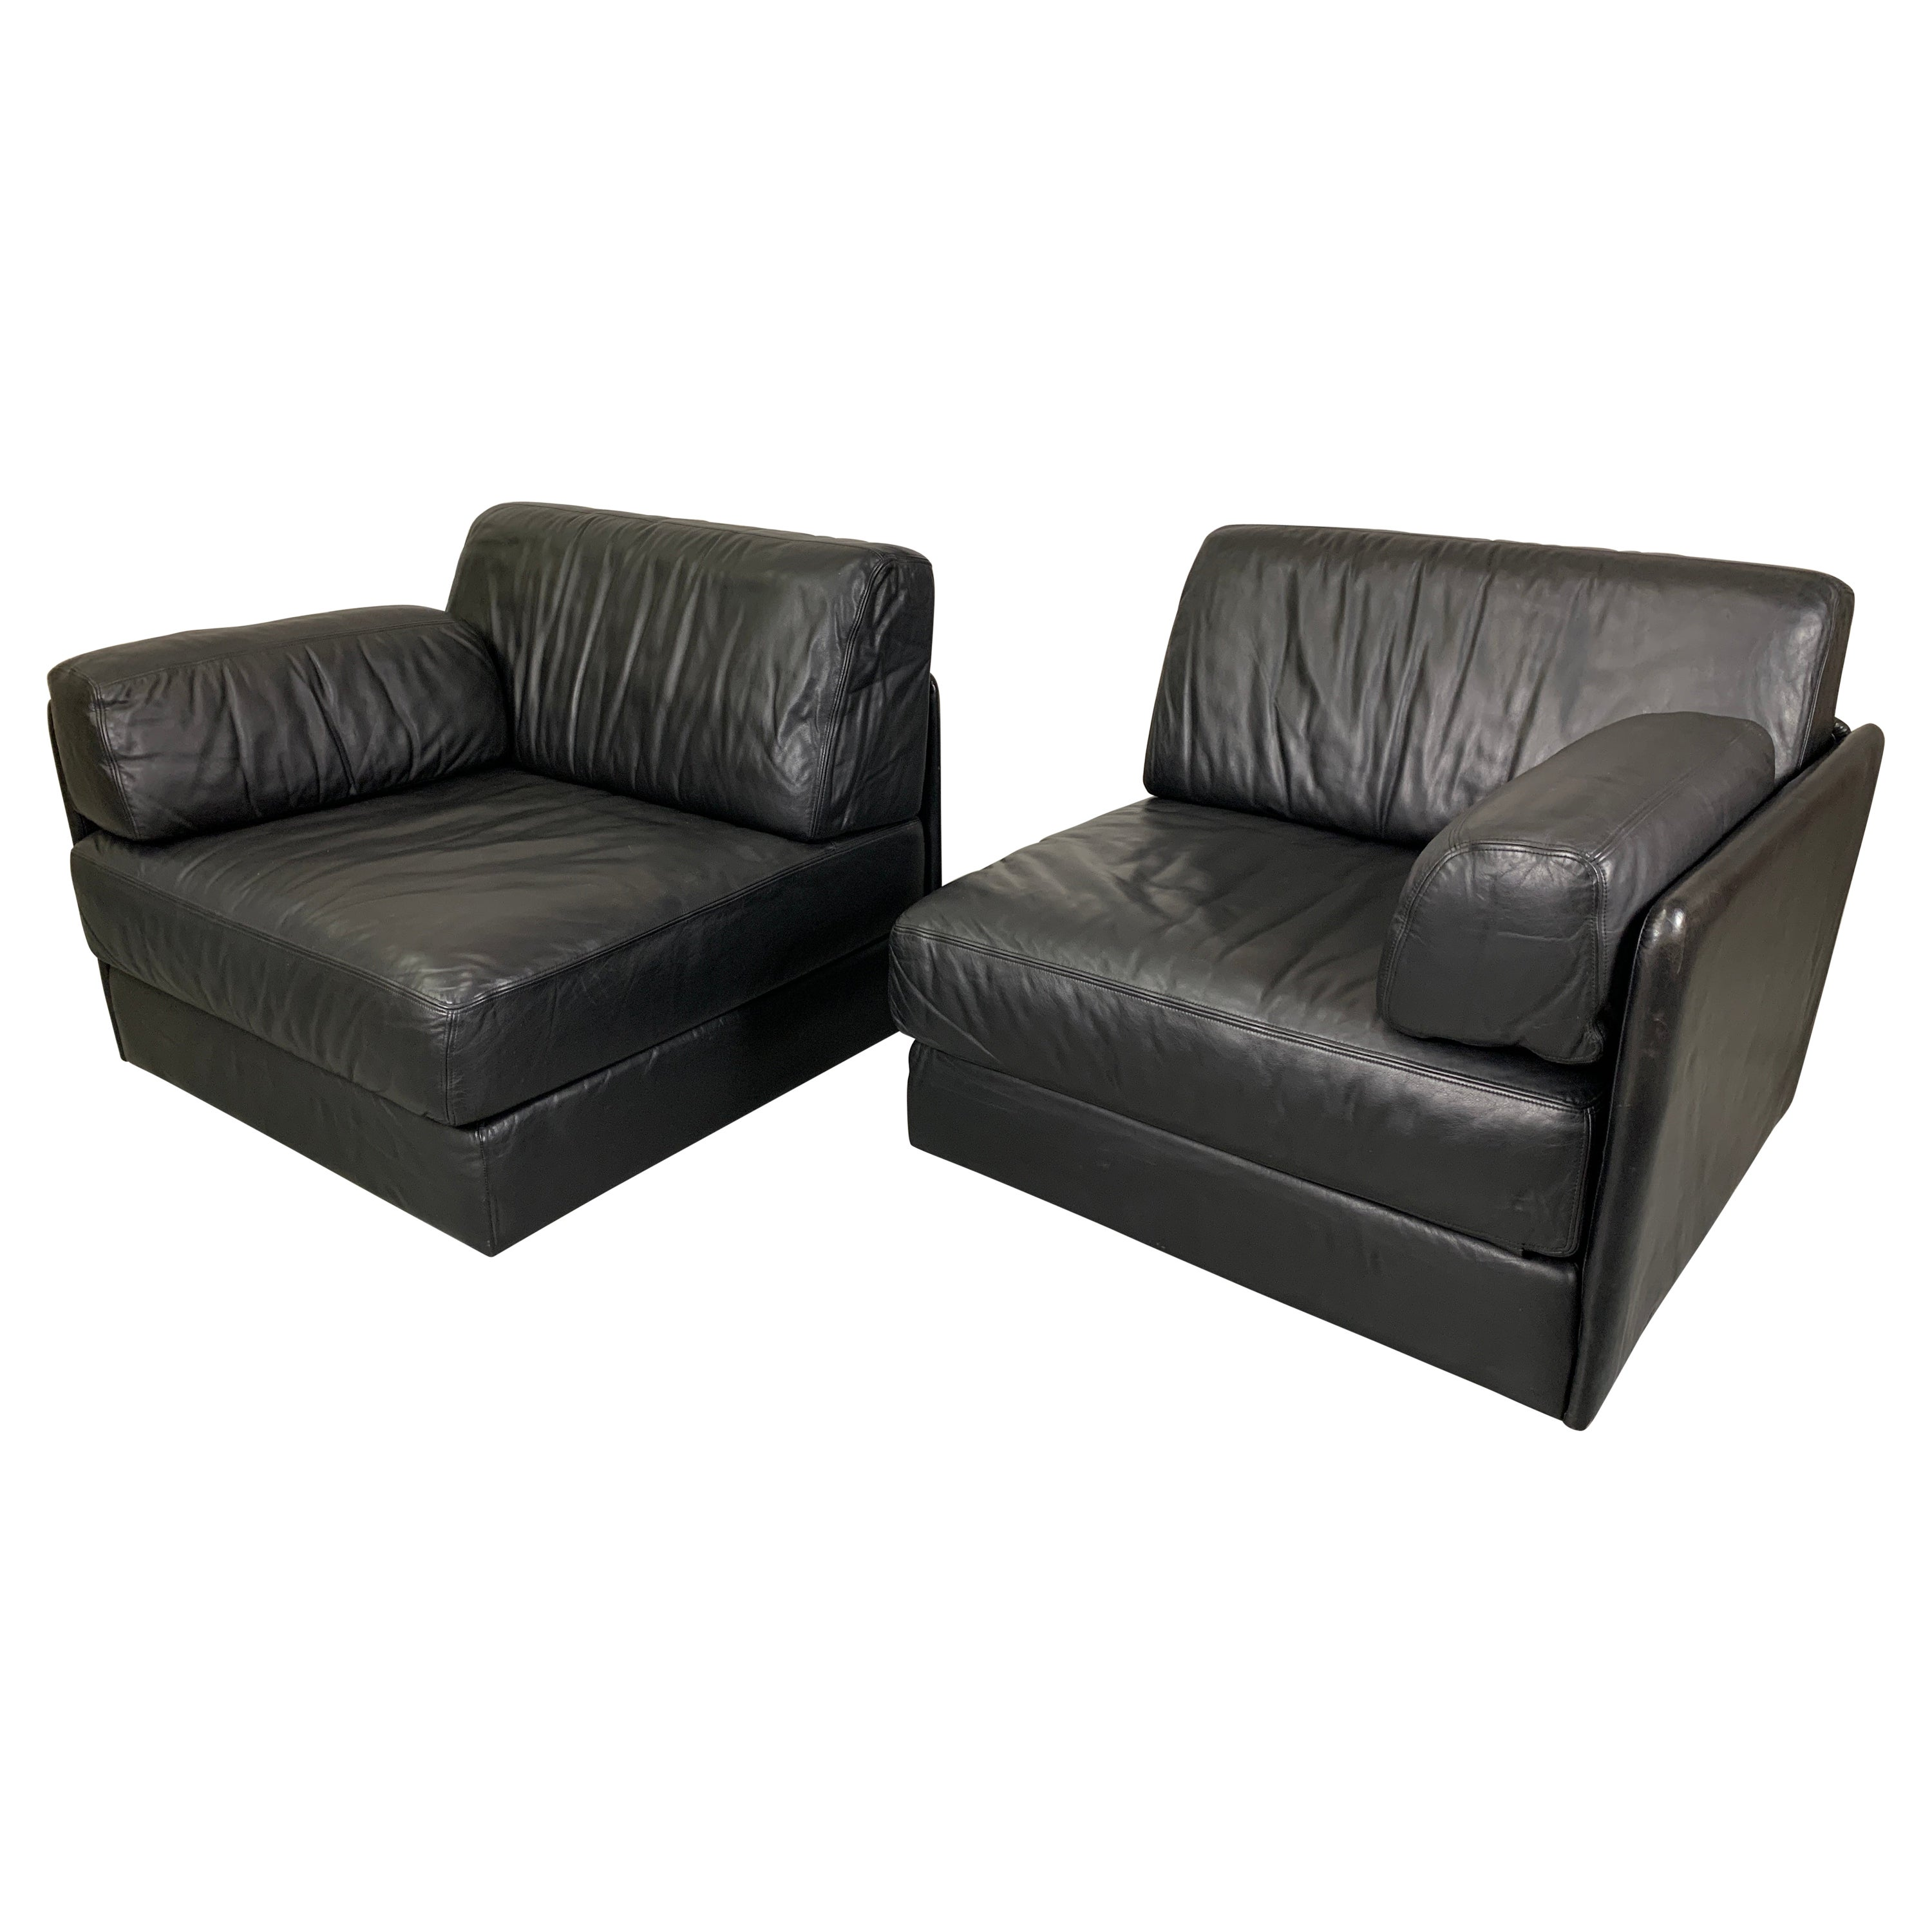 DS 76, De Sede Leather Chairs / Sofa